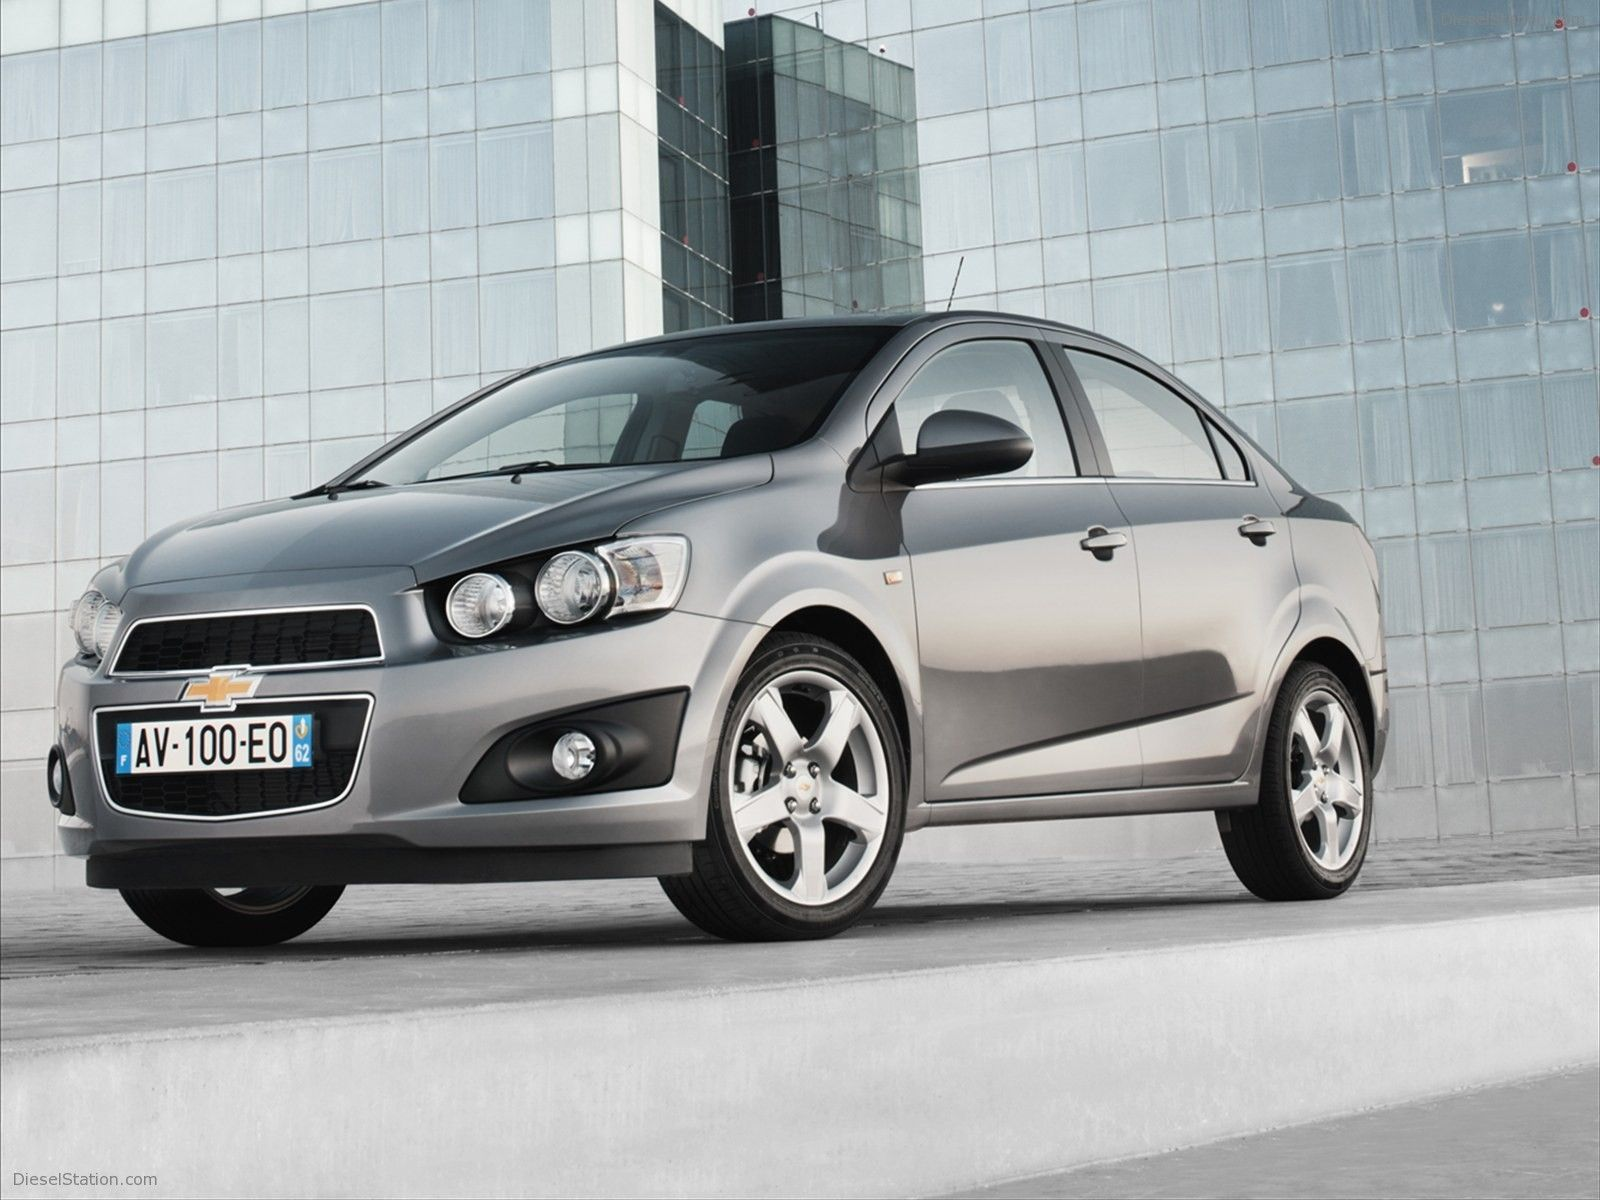 2011 Chevrolet Aveo Sedan Wallpapers   Terriod 2011 Chevrolet Aveo Sedan  Wallpapers With Regard To 2011 Chevrolet Aveo Sedan Wallpapers | 1600 X  1200 2011 ...